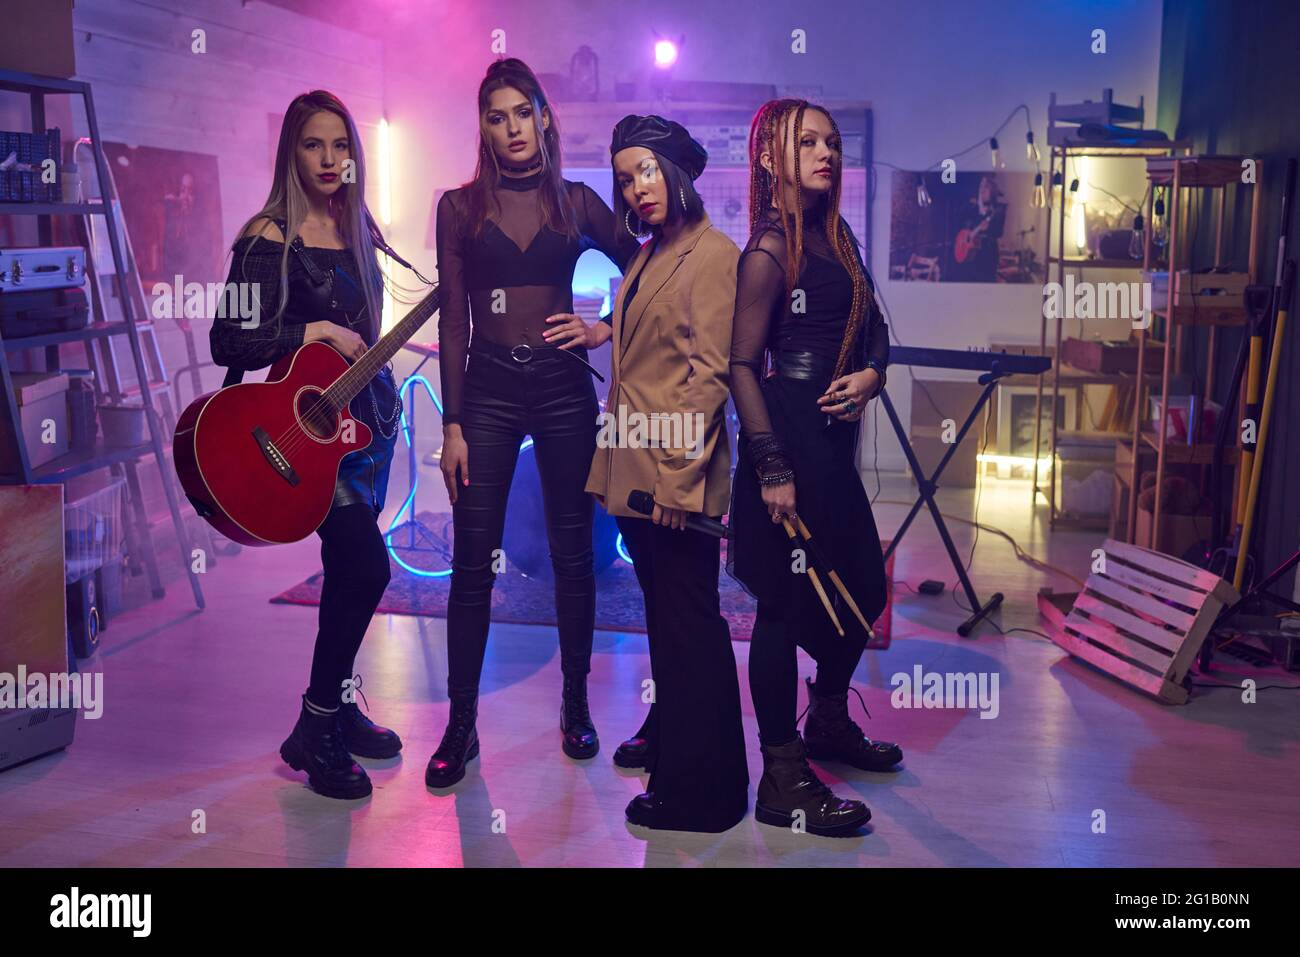 Group of young women with musical instruments standing in studio Stock Photo